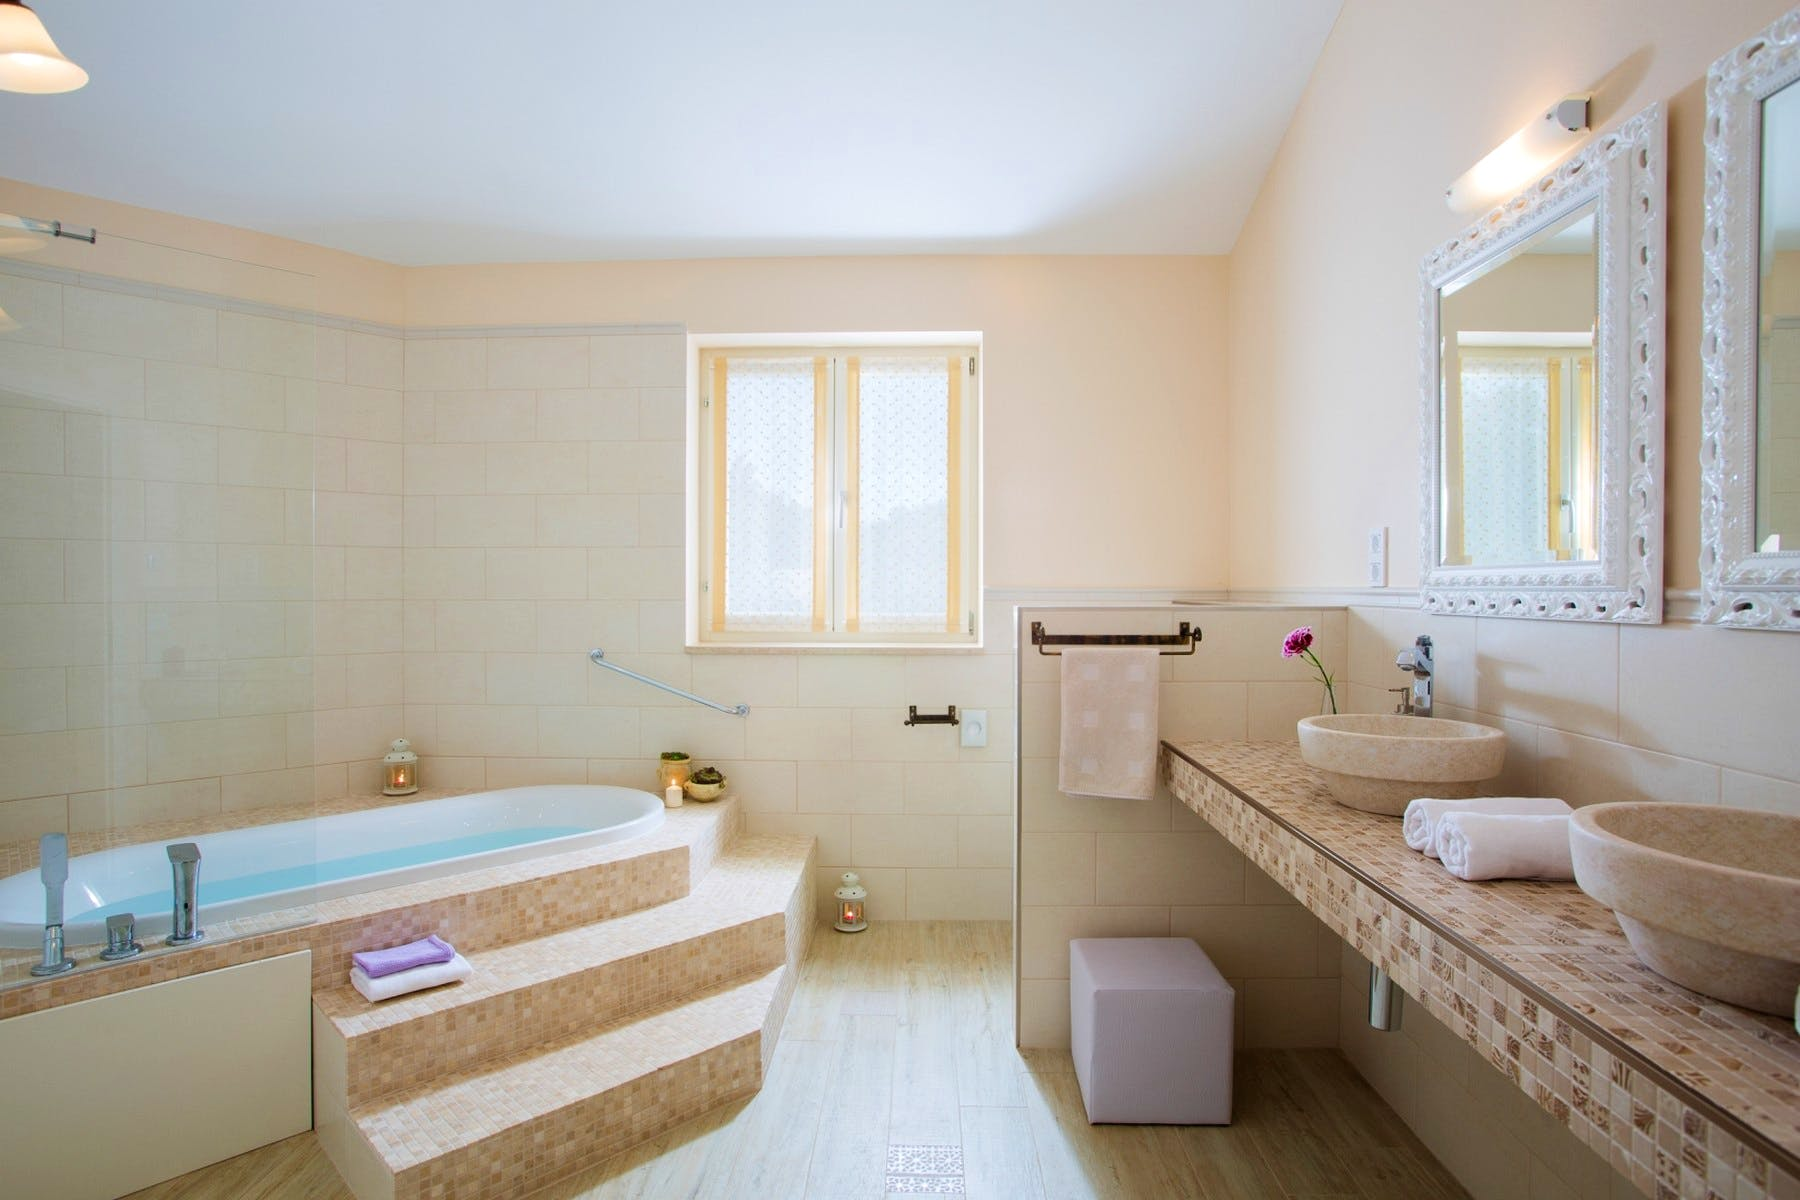 Spacious bathroom with whirlpool tub and double sink